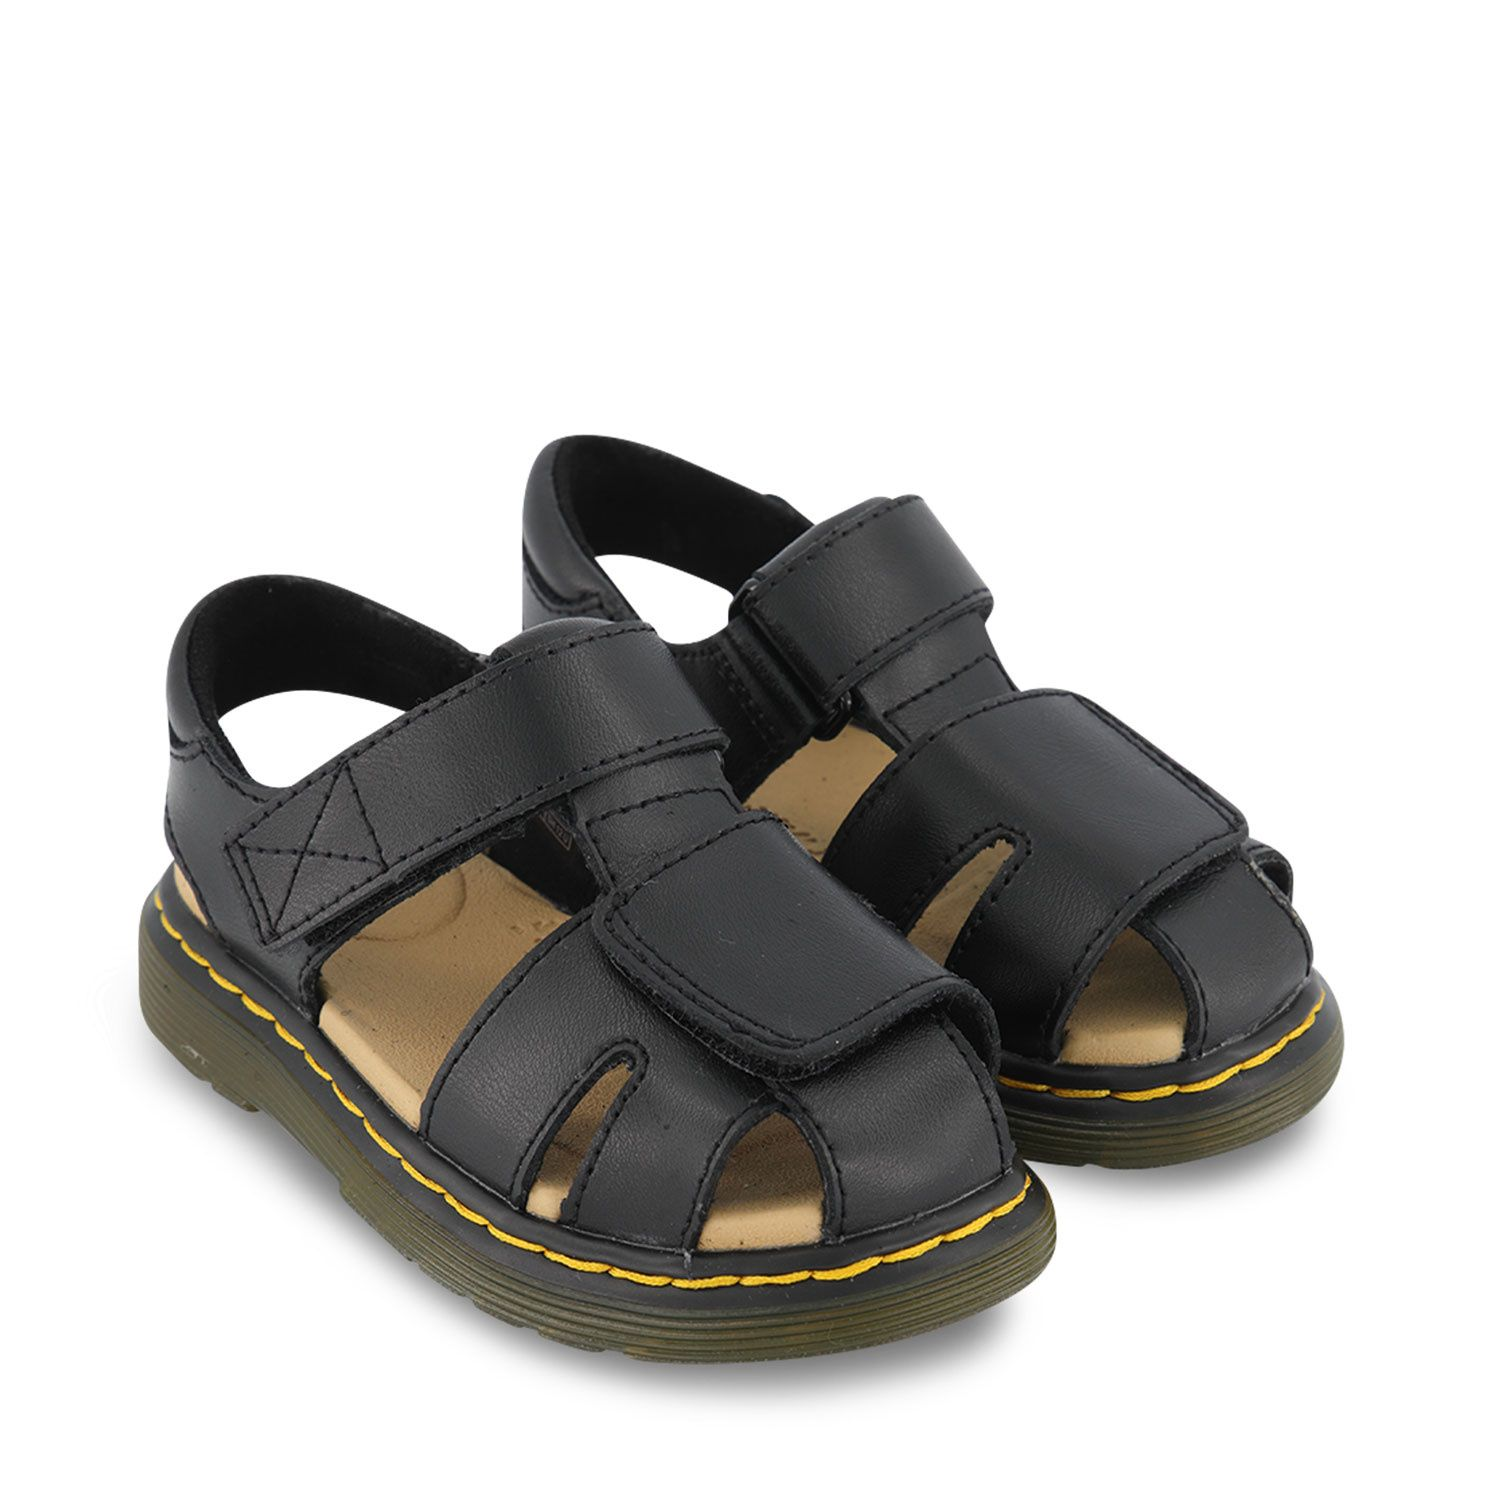 Picture of Dr. Martens 25863 kids sandals black